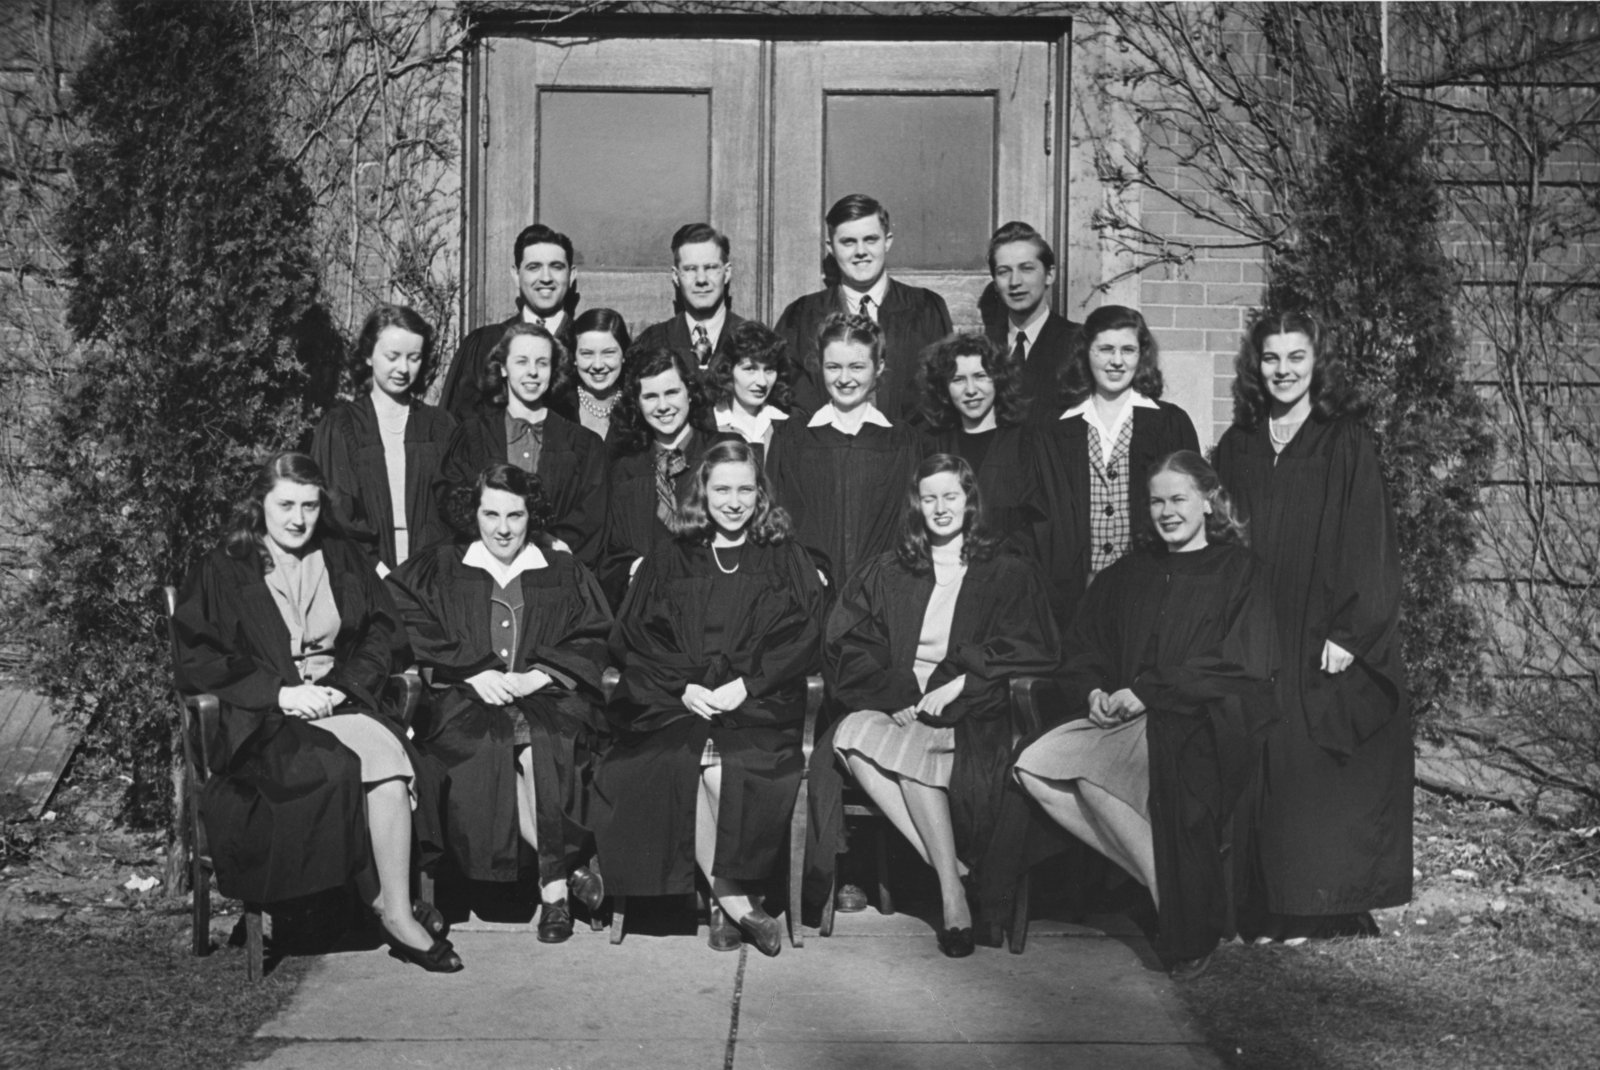 Waterloo College class of 1946